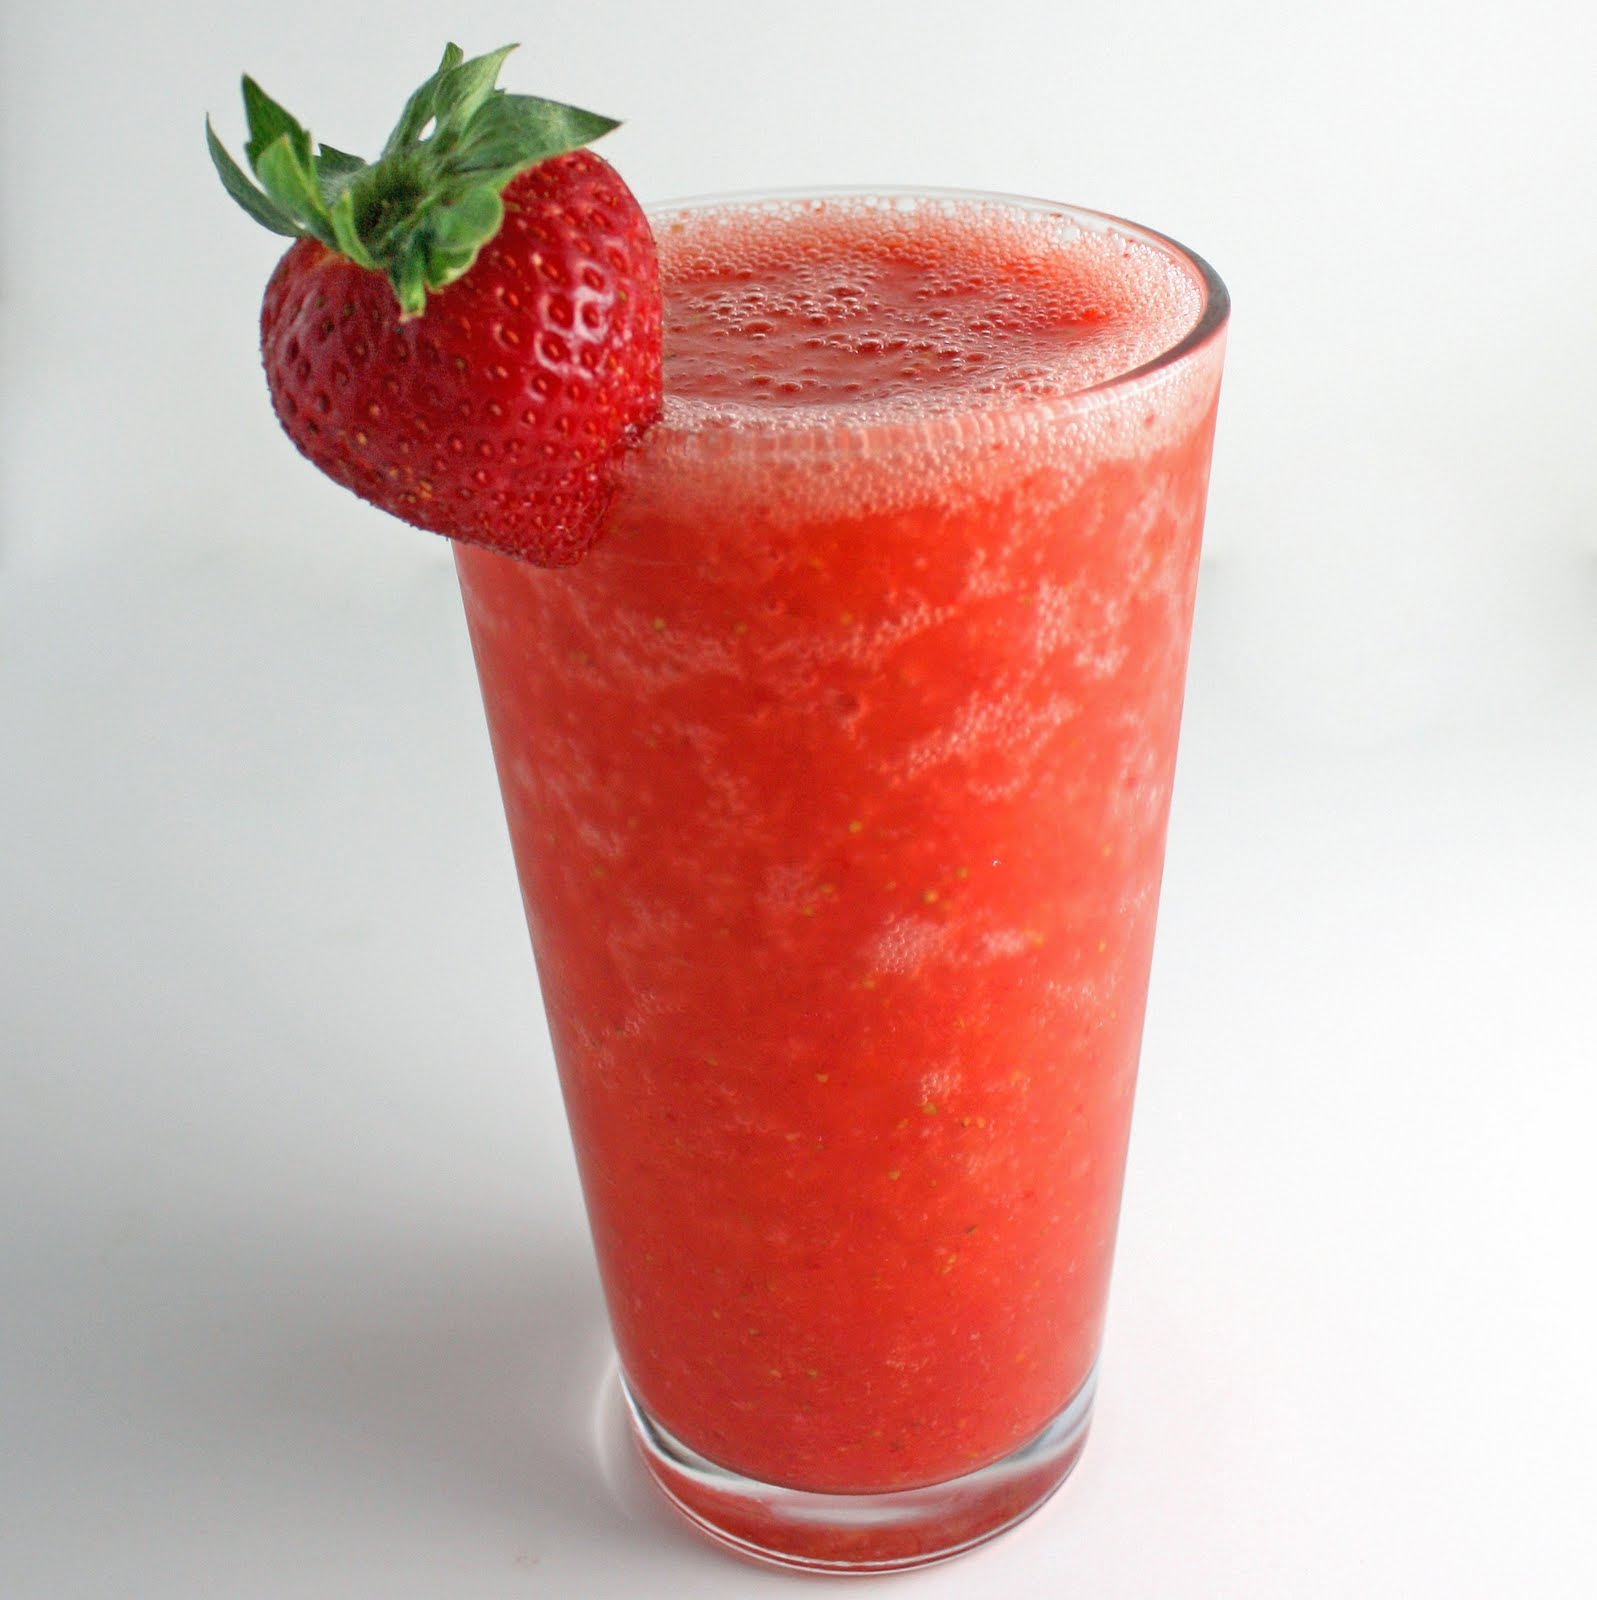 strawberry-lemon-smoothie.jpg